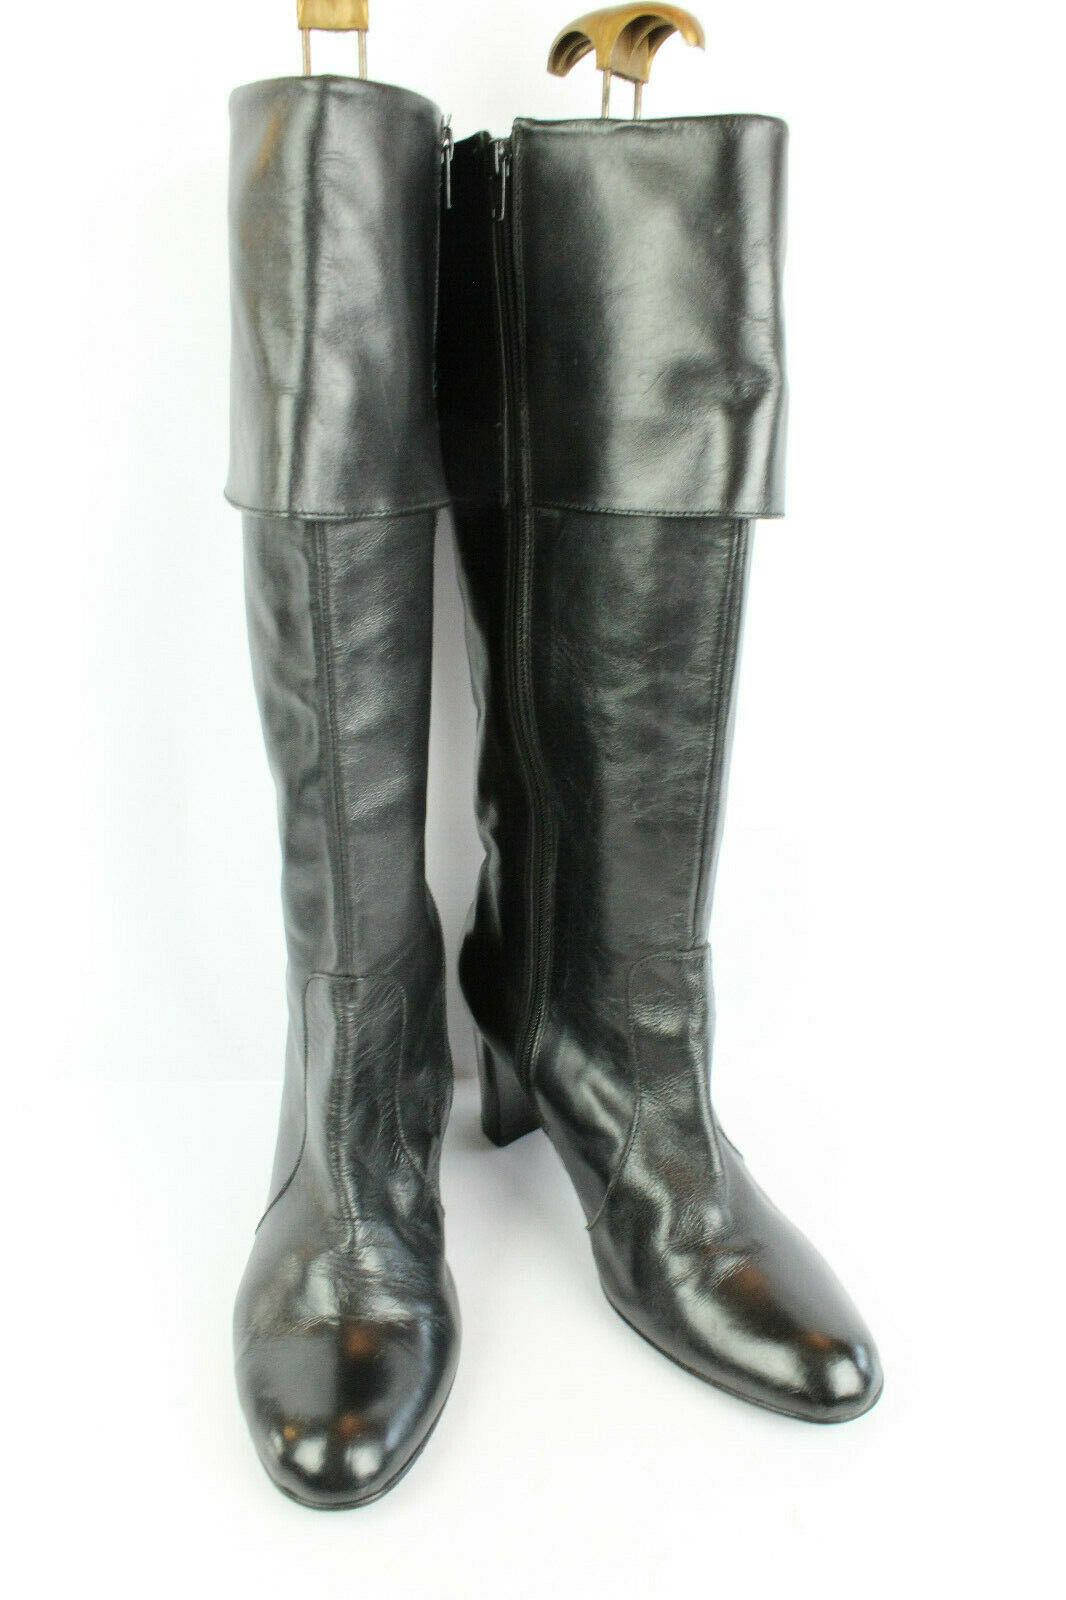 Boots TEX Black Leather T 41   UK 7,5 VERY GOOD CONDITION